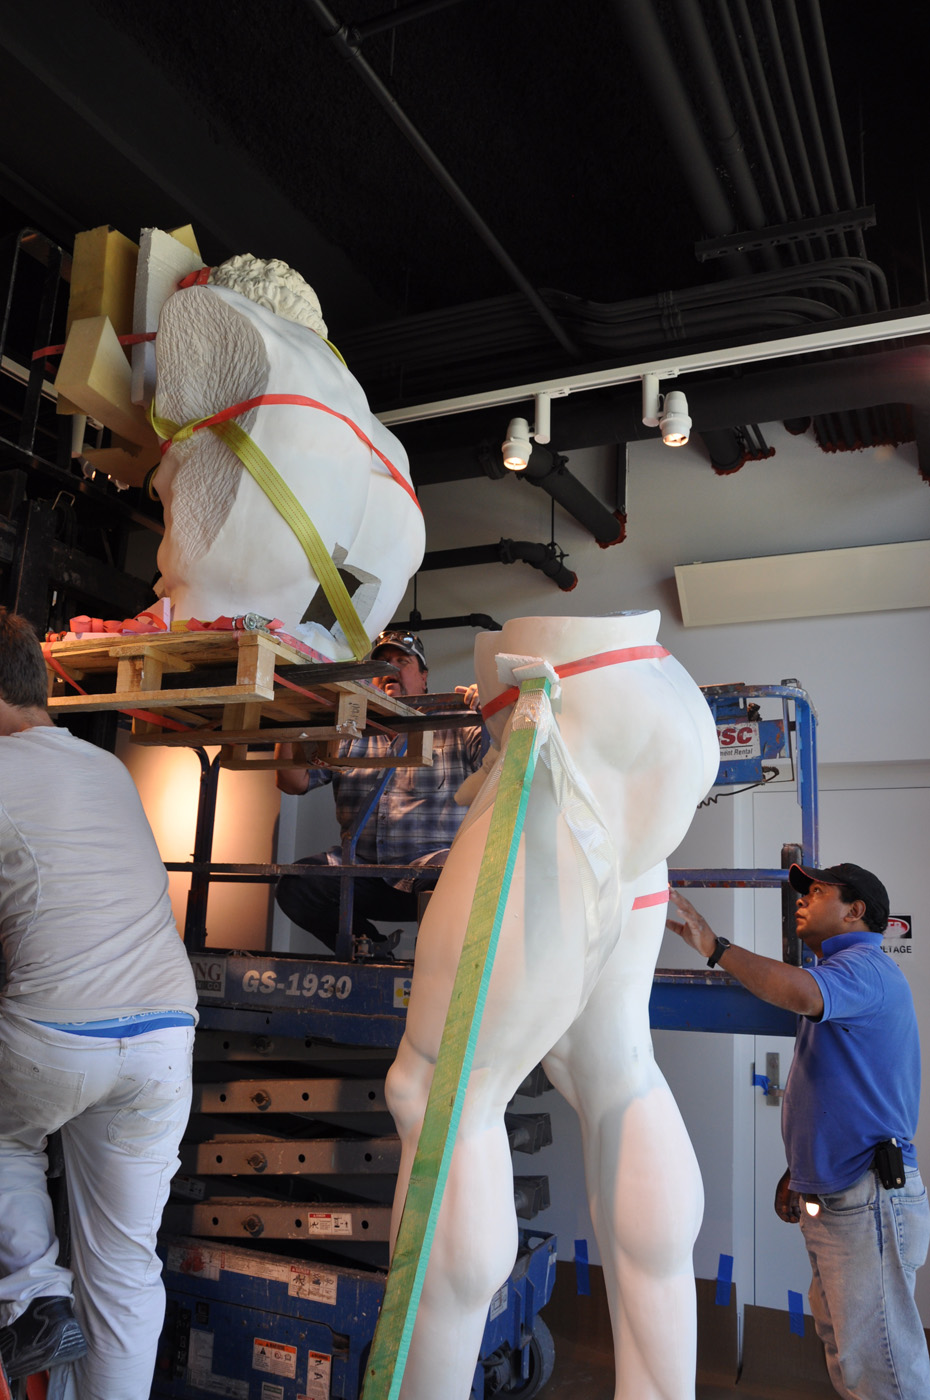 Side view of the bottom half of the statue of the Farnese Hercules, waiting for the top half to be installed, while three me work on it, in the main lobby, in 2009.